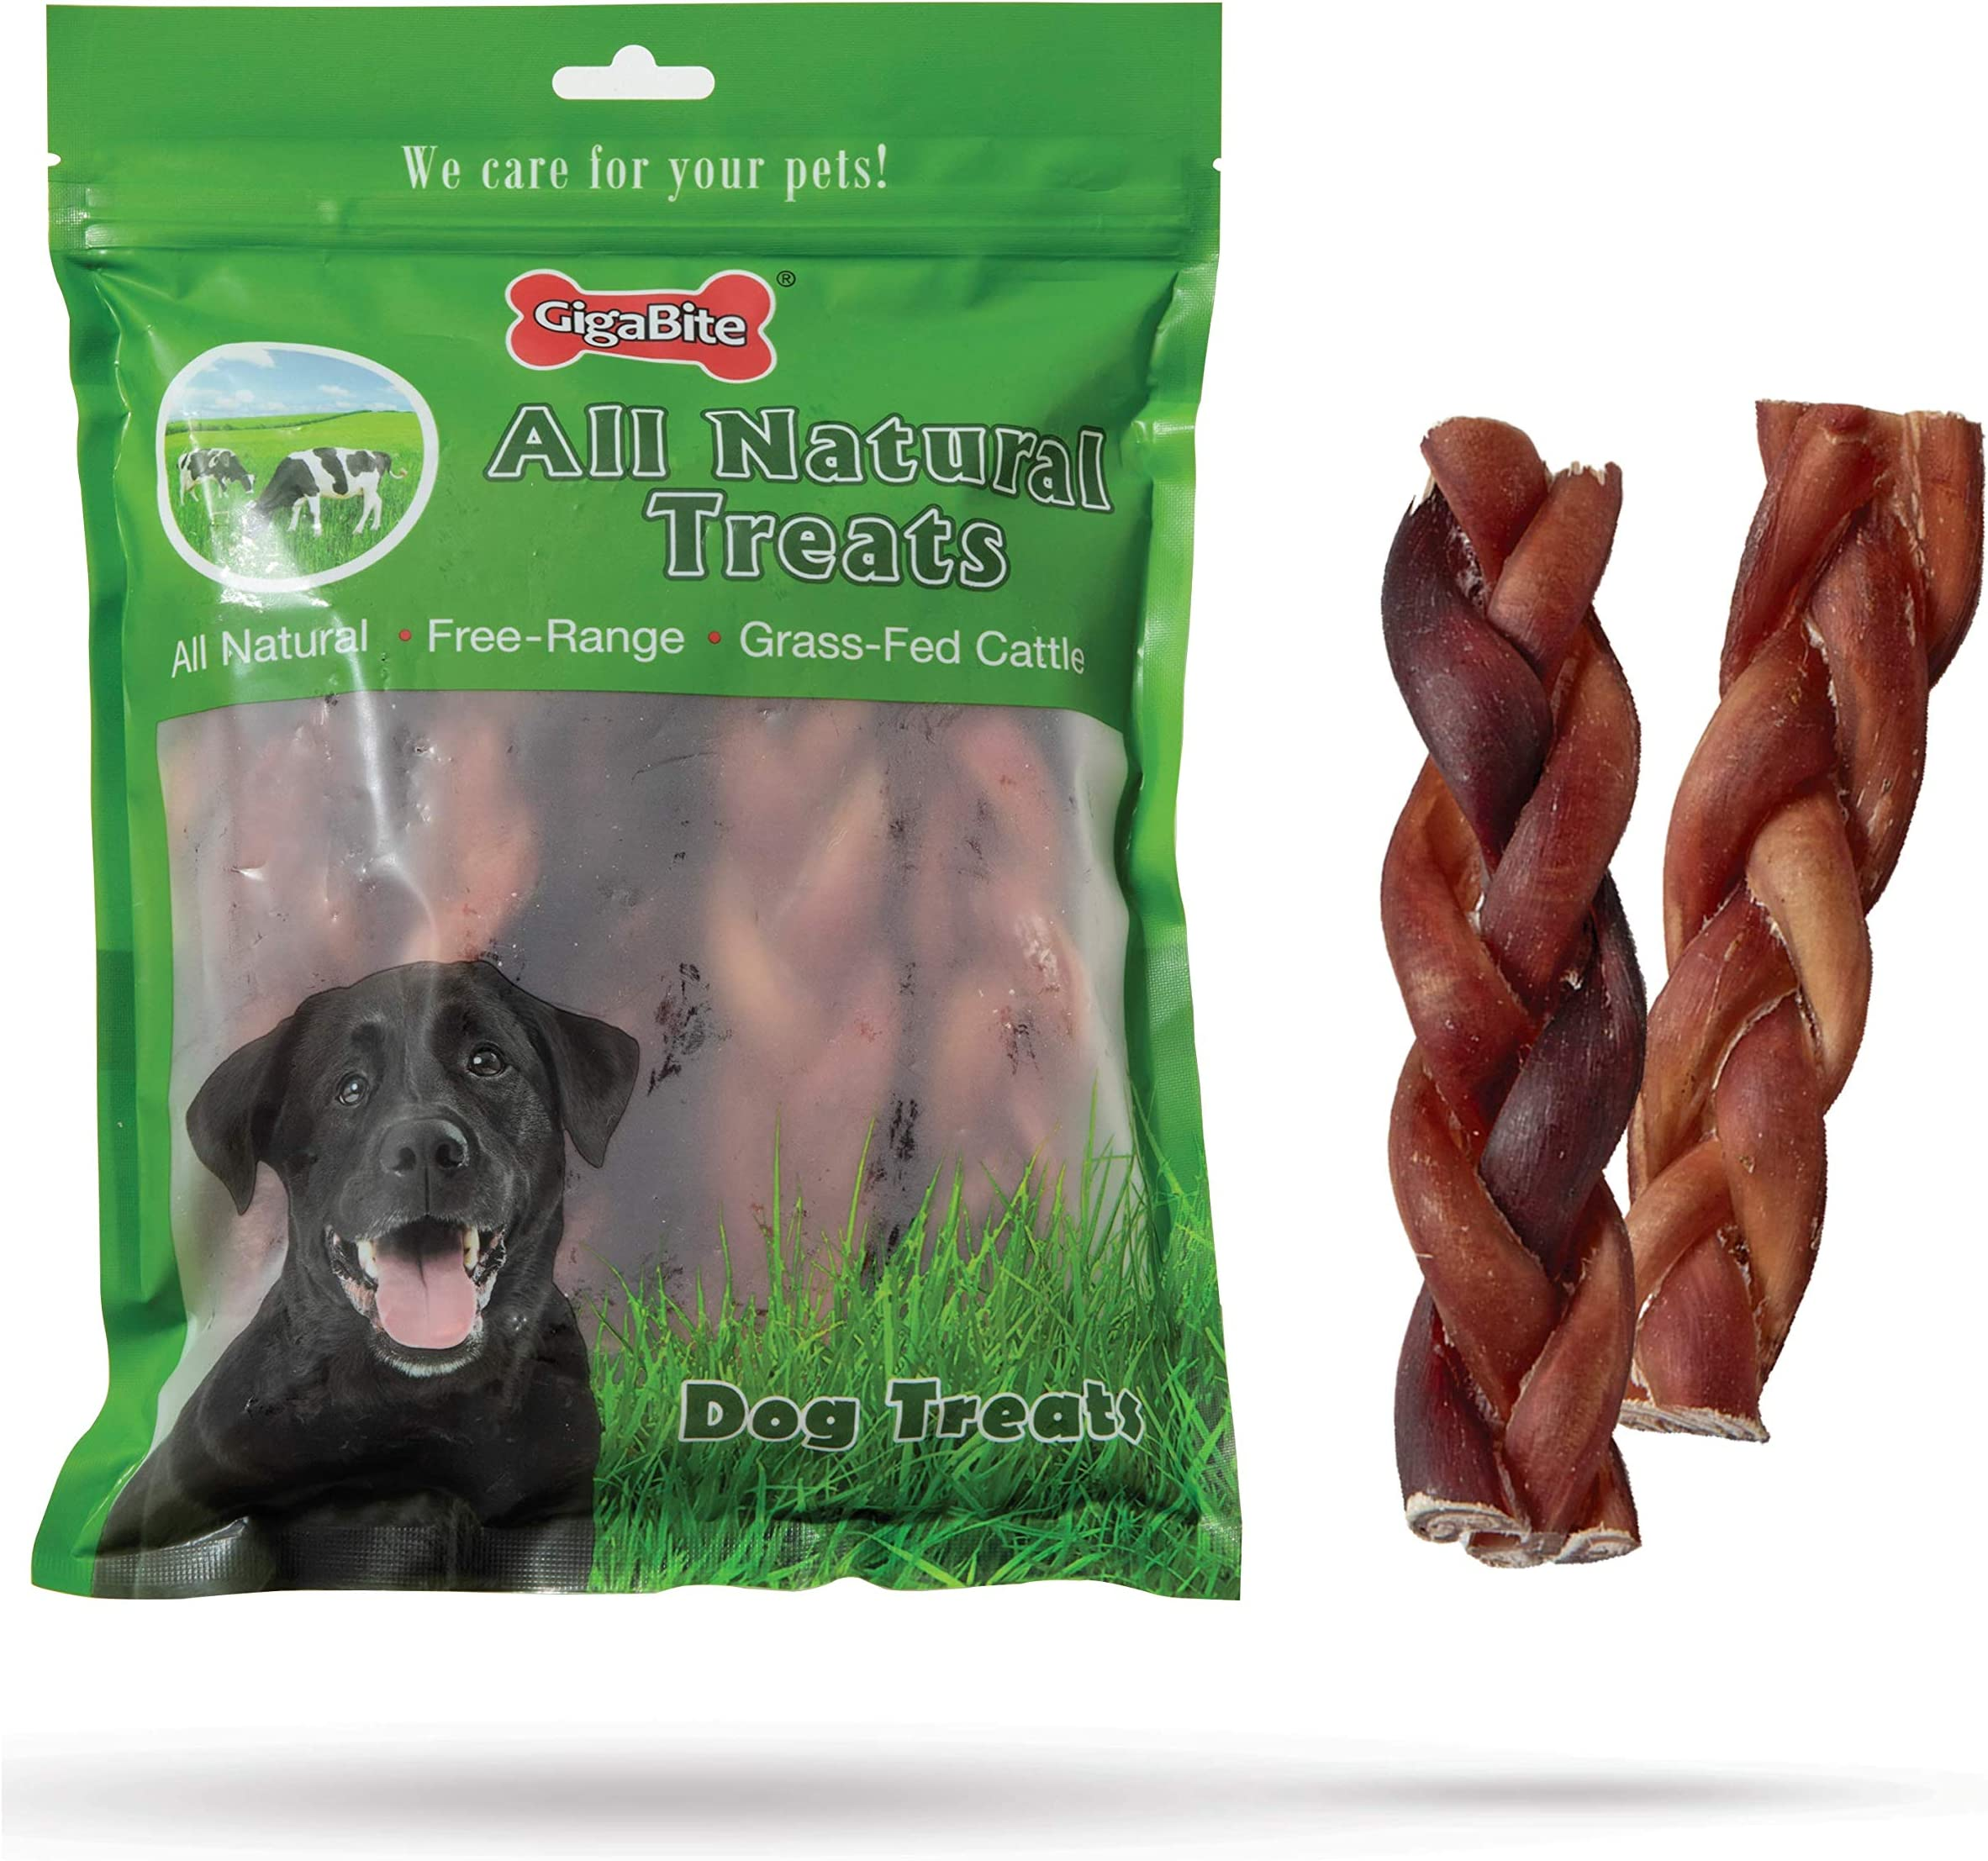 GigaBite 6 Inch Braided Bully Sticks (10 Pack) - All Natural, Free Range Beef Pizzle Dog Treat - By Best Pet Supplies, 6-Inch (BB-06-10)